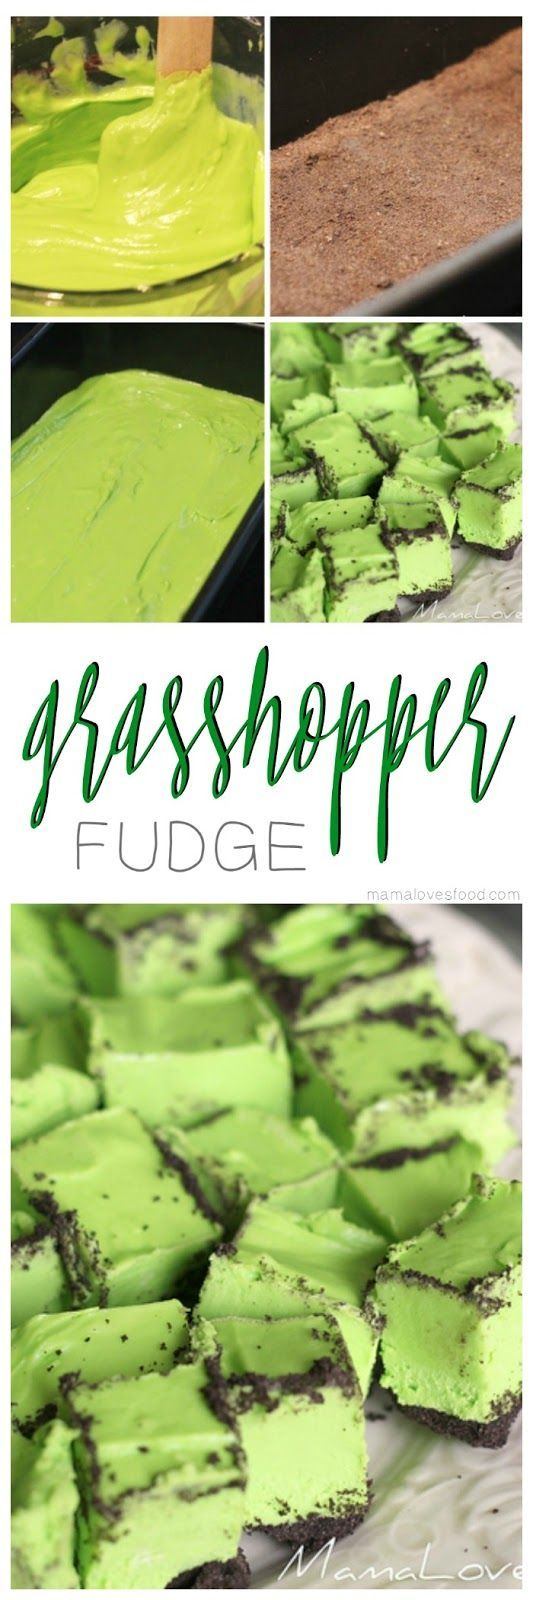 Grasshopper fudge is the perfect fun green recipe for your holiday parties.  Move over thin mints, this is so much tastier and available all year long!